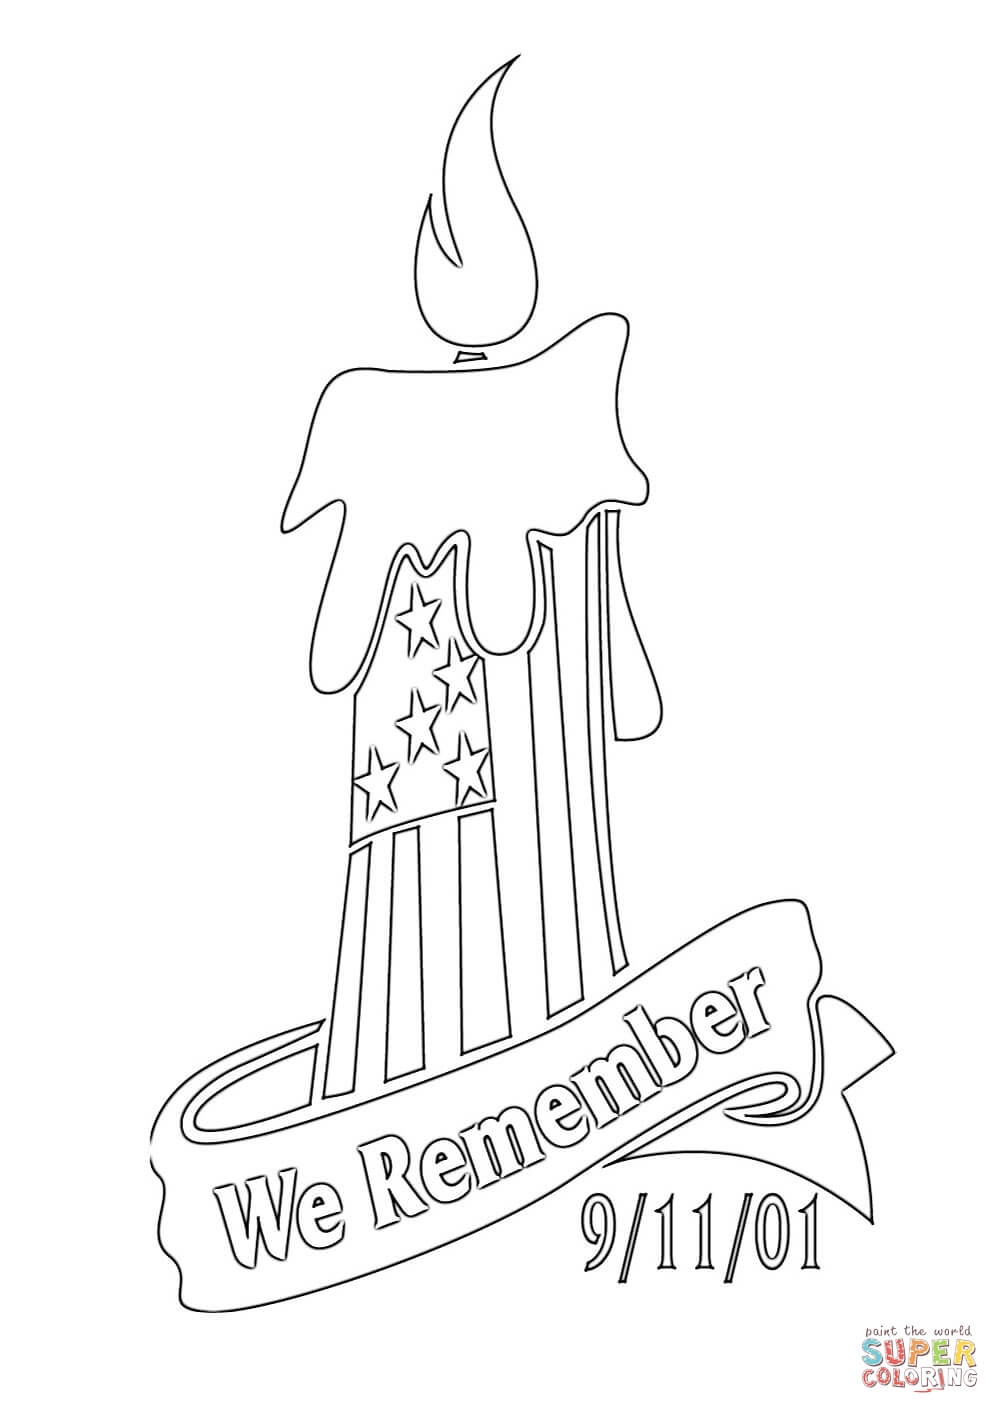 coloring sheets 911 911 coloring pages patriots day best coloring pages sheets coloring 911